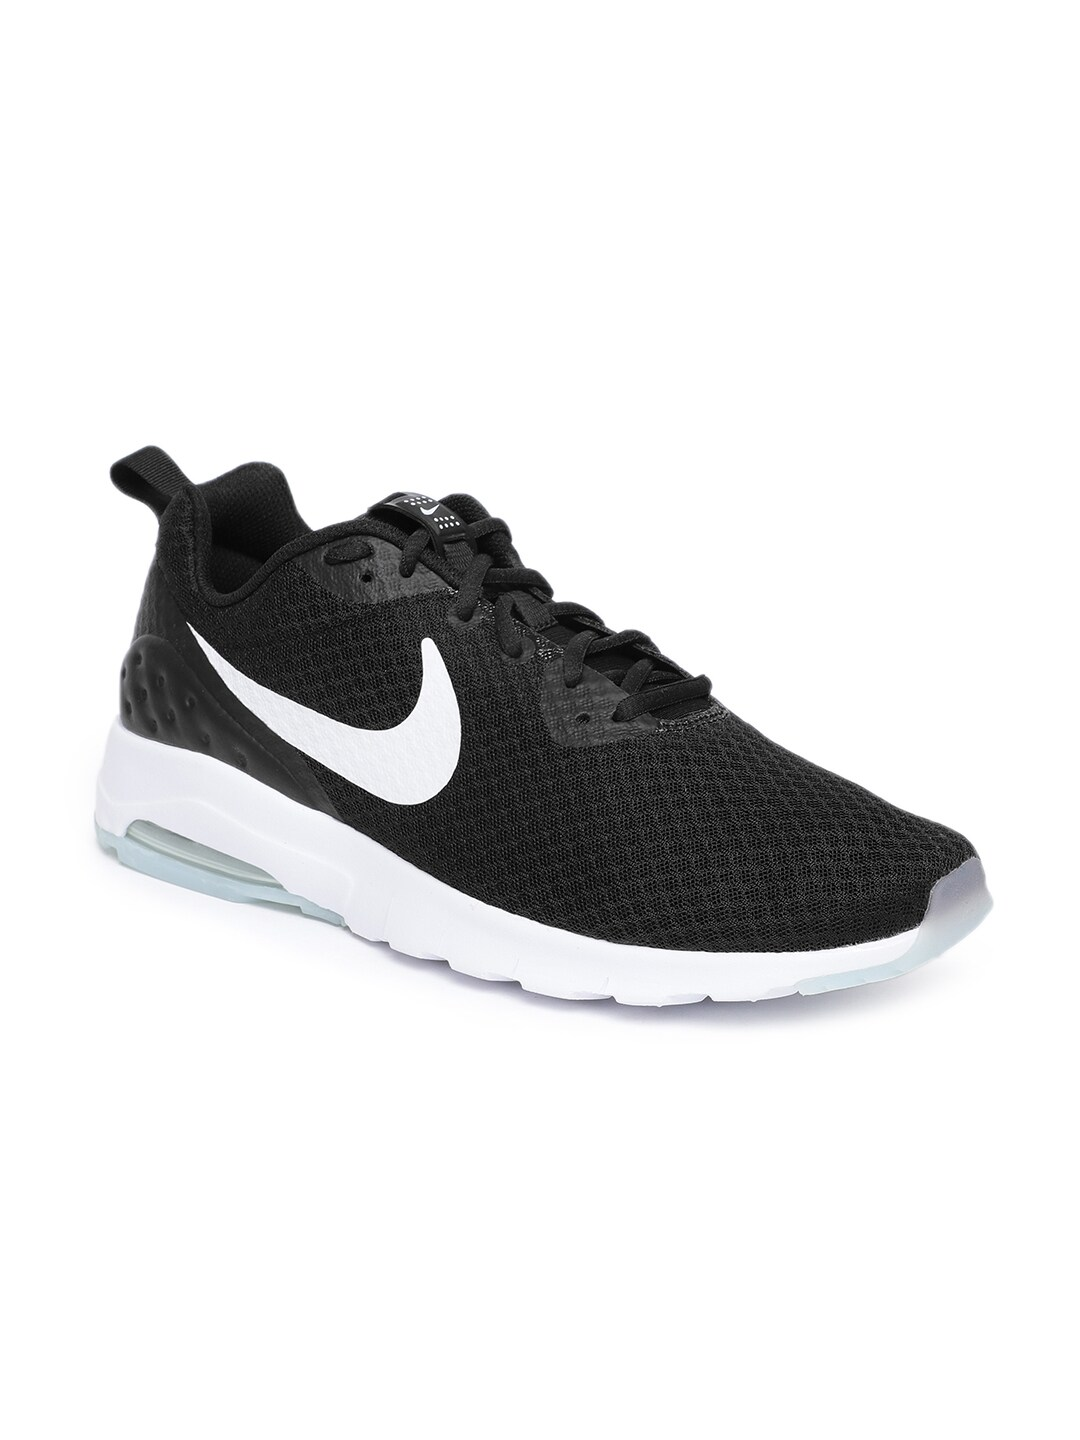 2233f89c03e Nike Air Max Shoes - Buy Nike Air Max Shoes Online for Men   Women